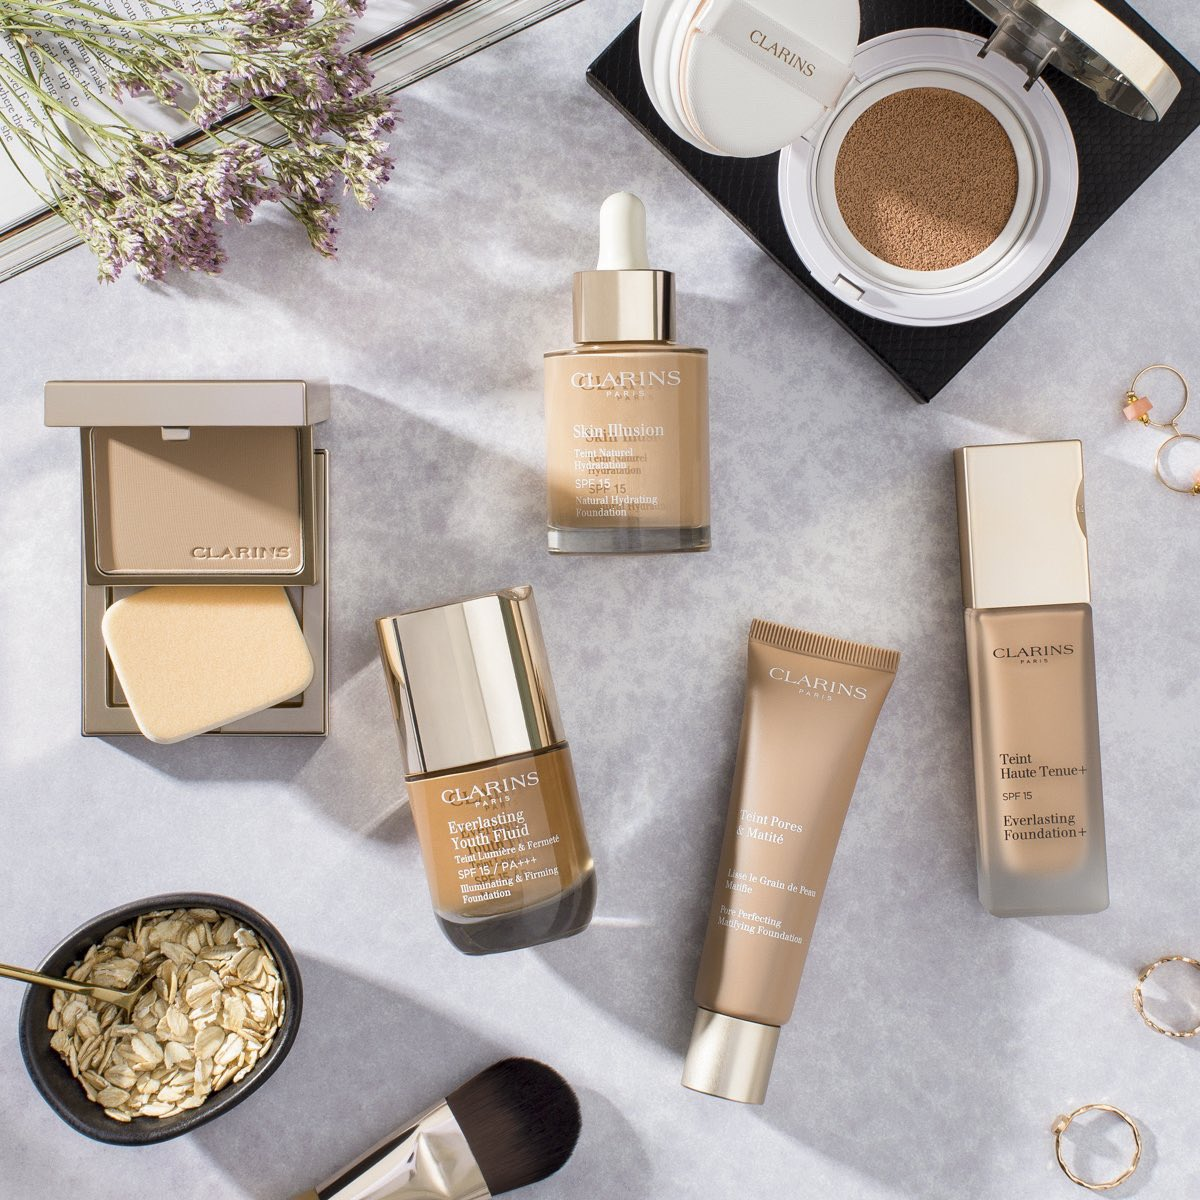 Flawless, filtered and au natural. Get to know our complexion must-haves:  http://ow.ly/RTce50wQpuF   #clarins  @LBBeautySpa  #tenterden